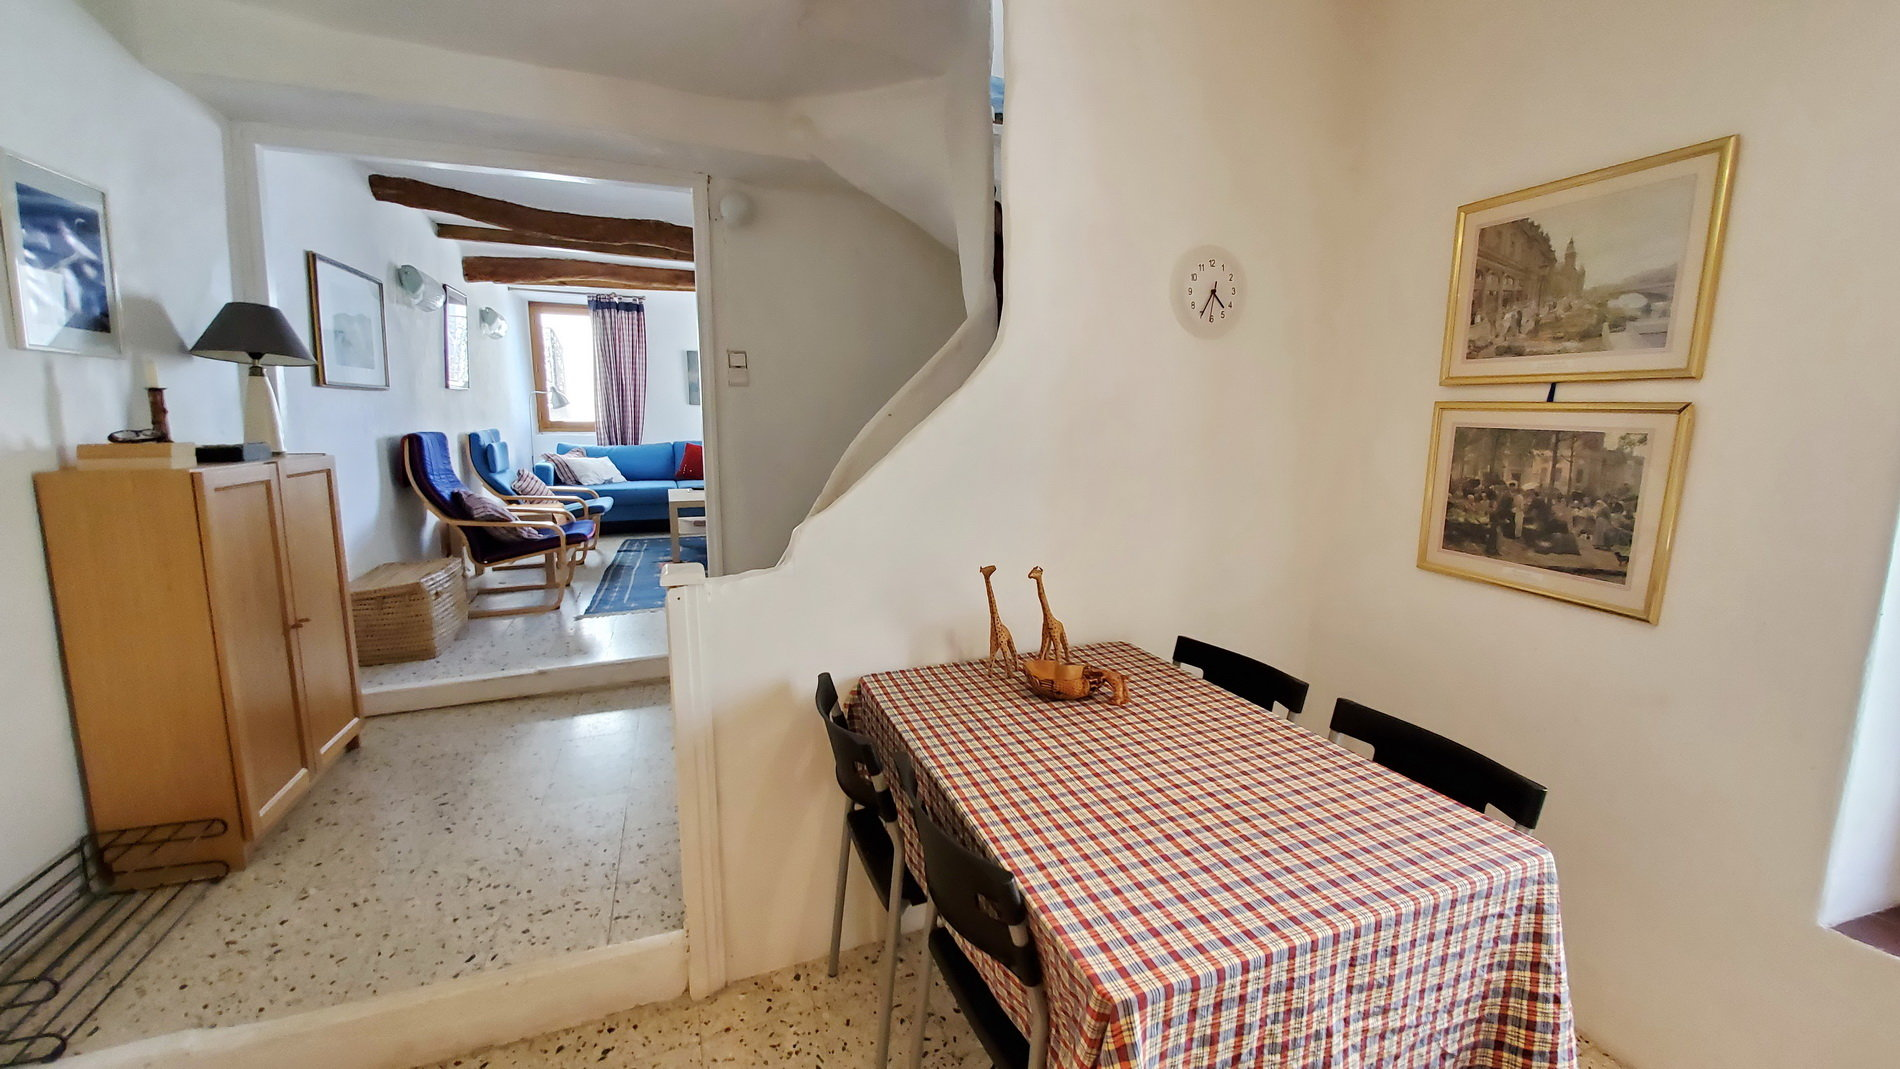 Charming village house with 3 bedrooms and a sunny terrace